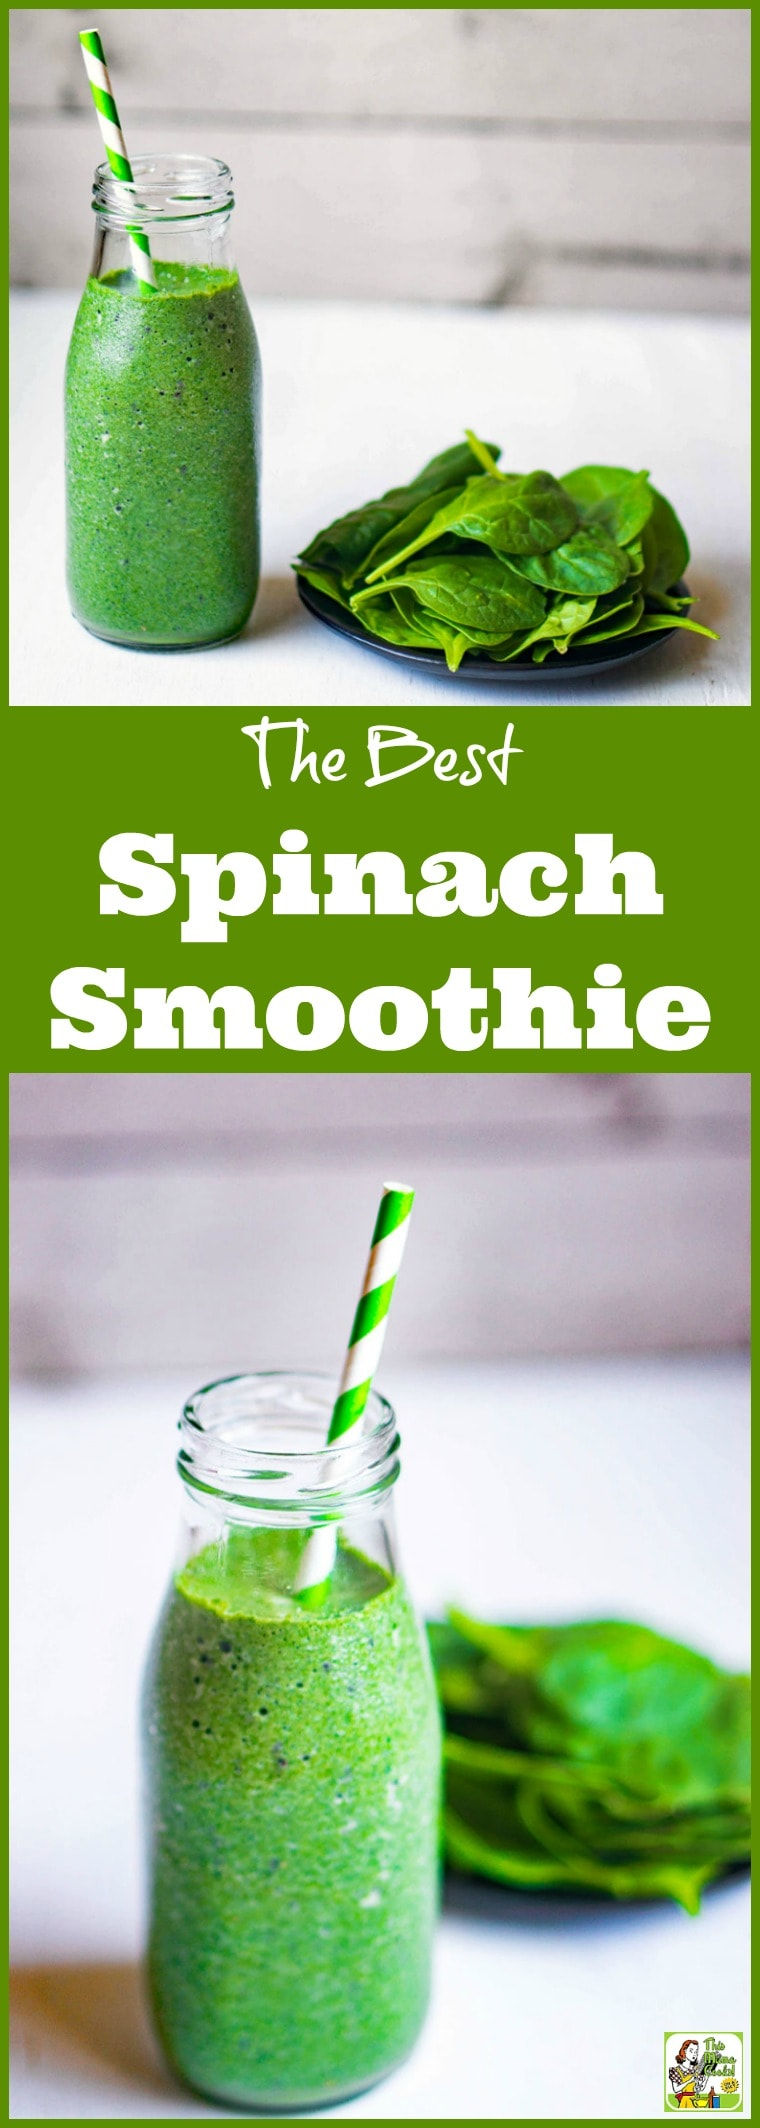 How to Make the Best Spinach Smoothie Recipes from spinach, coconut water, Greek yogurt, and banana and turn it into a healthy fruit smoothie recipe. Comes with a dairy free option. #recipe #easy #recipeoftheday #healthyrecipes #glutenfree #easyrecipes #breakfast #snacks #lowcaloriesnacks #shakes #breakfastsmoothies #smoothies #smoothiesrecipes #yogurt #spinach #bananas #dairyfree